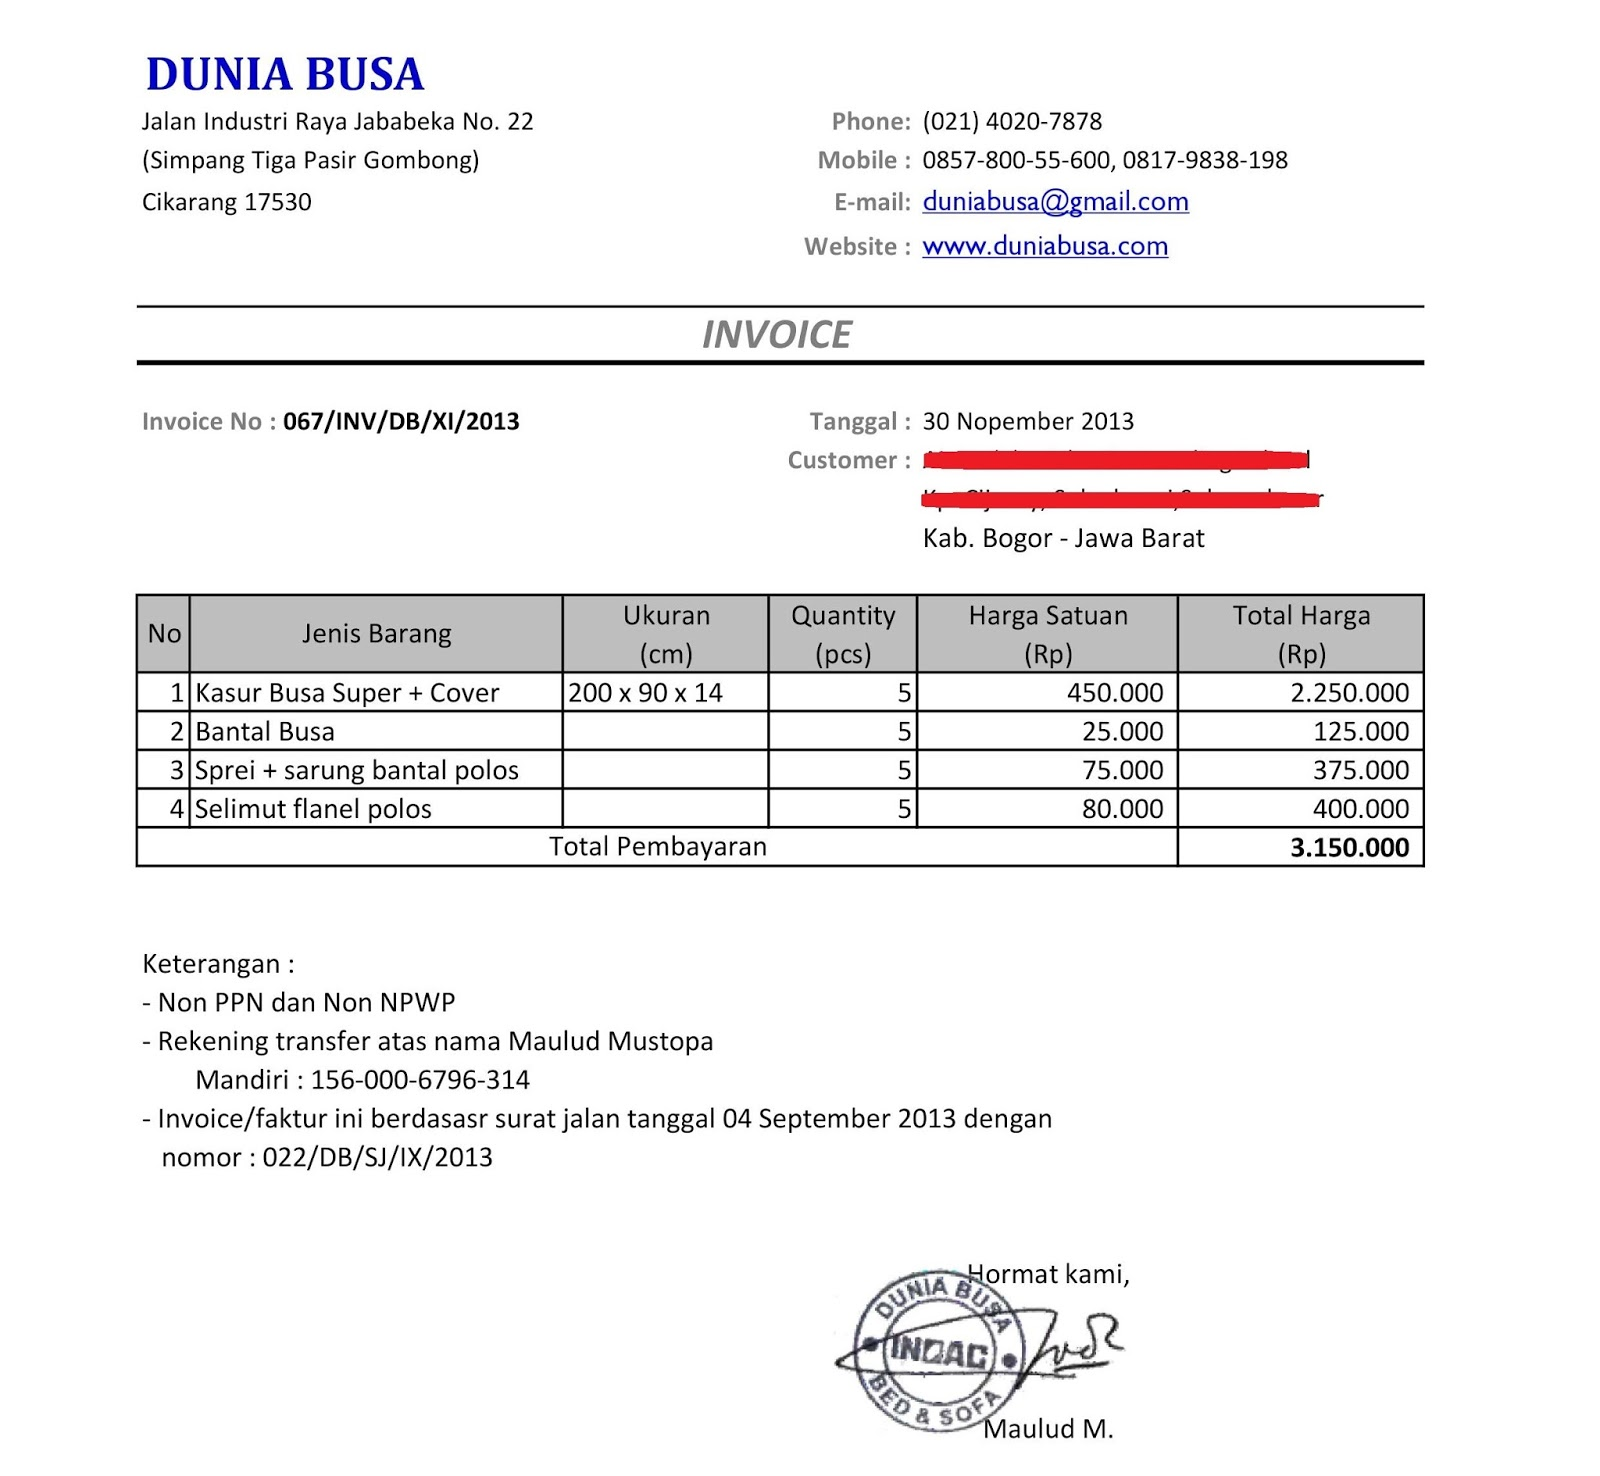 Usdgus  Nice Free Invoice Online  Create Invoice Online  Invoice Template  With Extraordinary Contoh Format Invoice Atau Surat Tagihan  Brankas Arsip  Free Invoice Online With Cool Usps Receipt Confirmation Also Receipt For Donut In Addition Sephora Return Policy With Receipt And Gross Tax Receipts As Well As Receipt Of This Letter Additionally Receipt Antonym From Sklepco With Usdgus  Extraordinary Free Invoice Online  Create Invoice Online  Invoice Template  With Cool Contoh Format Invoice Atau Surat Tagihan  Brankas Arsip  Free Invoice Online And Nice Usps Receipt Confirmation Also Receipt For Donut In Addition Sephora Return Policy With Receipt From Sklepco